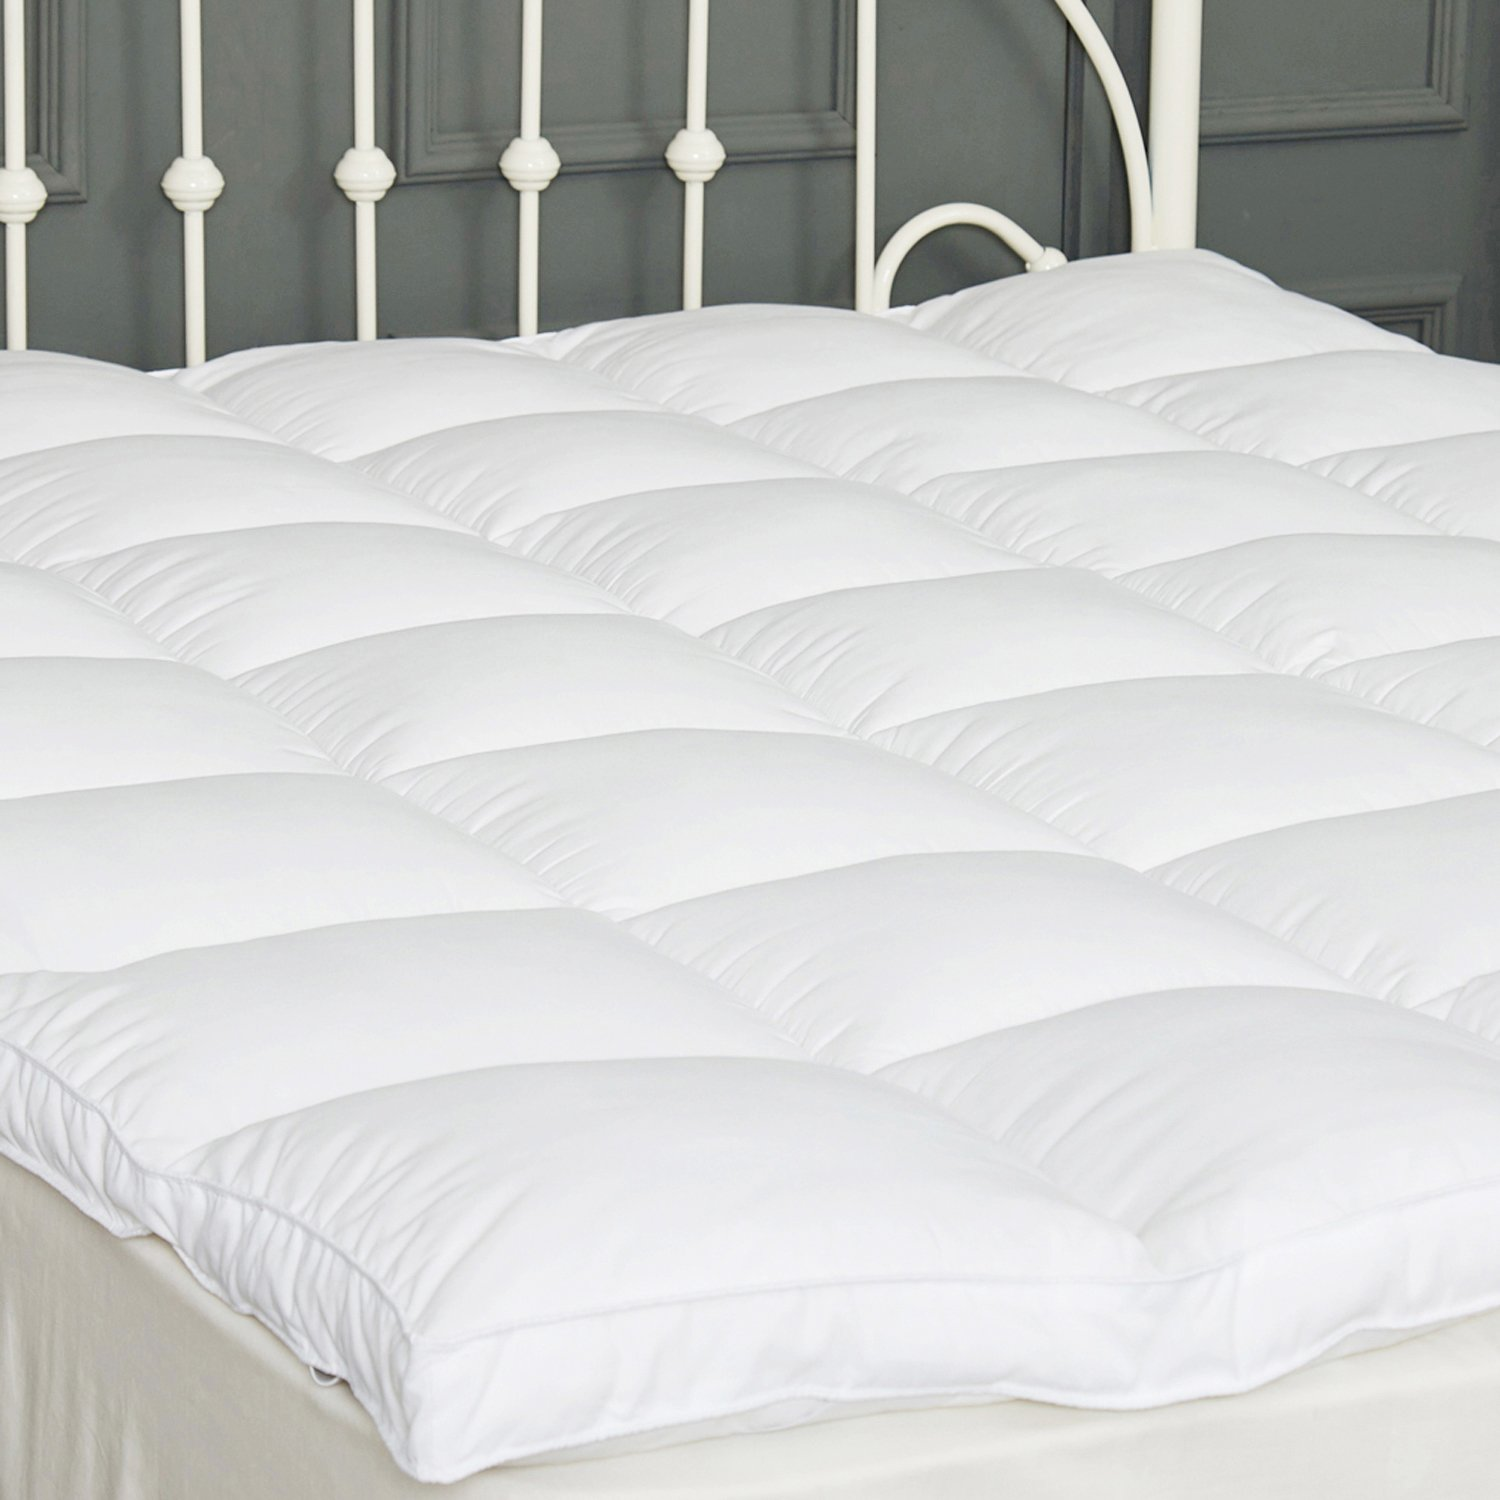 """Mattress Topper Full Down Alternative - DUO-V HOME Quilted Pillow Top Mattress Pad 2"""" Thick Hypoallergenic with 4 Anchor Bands, Soft and Firm, 5 Year Warranty"""